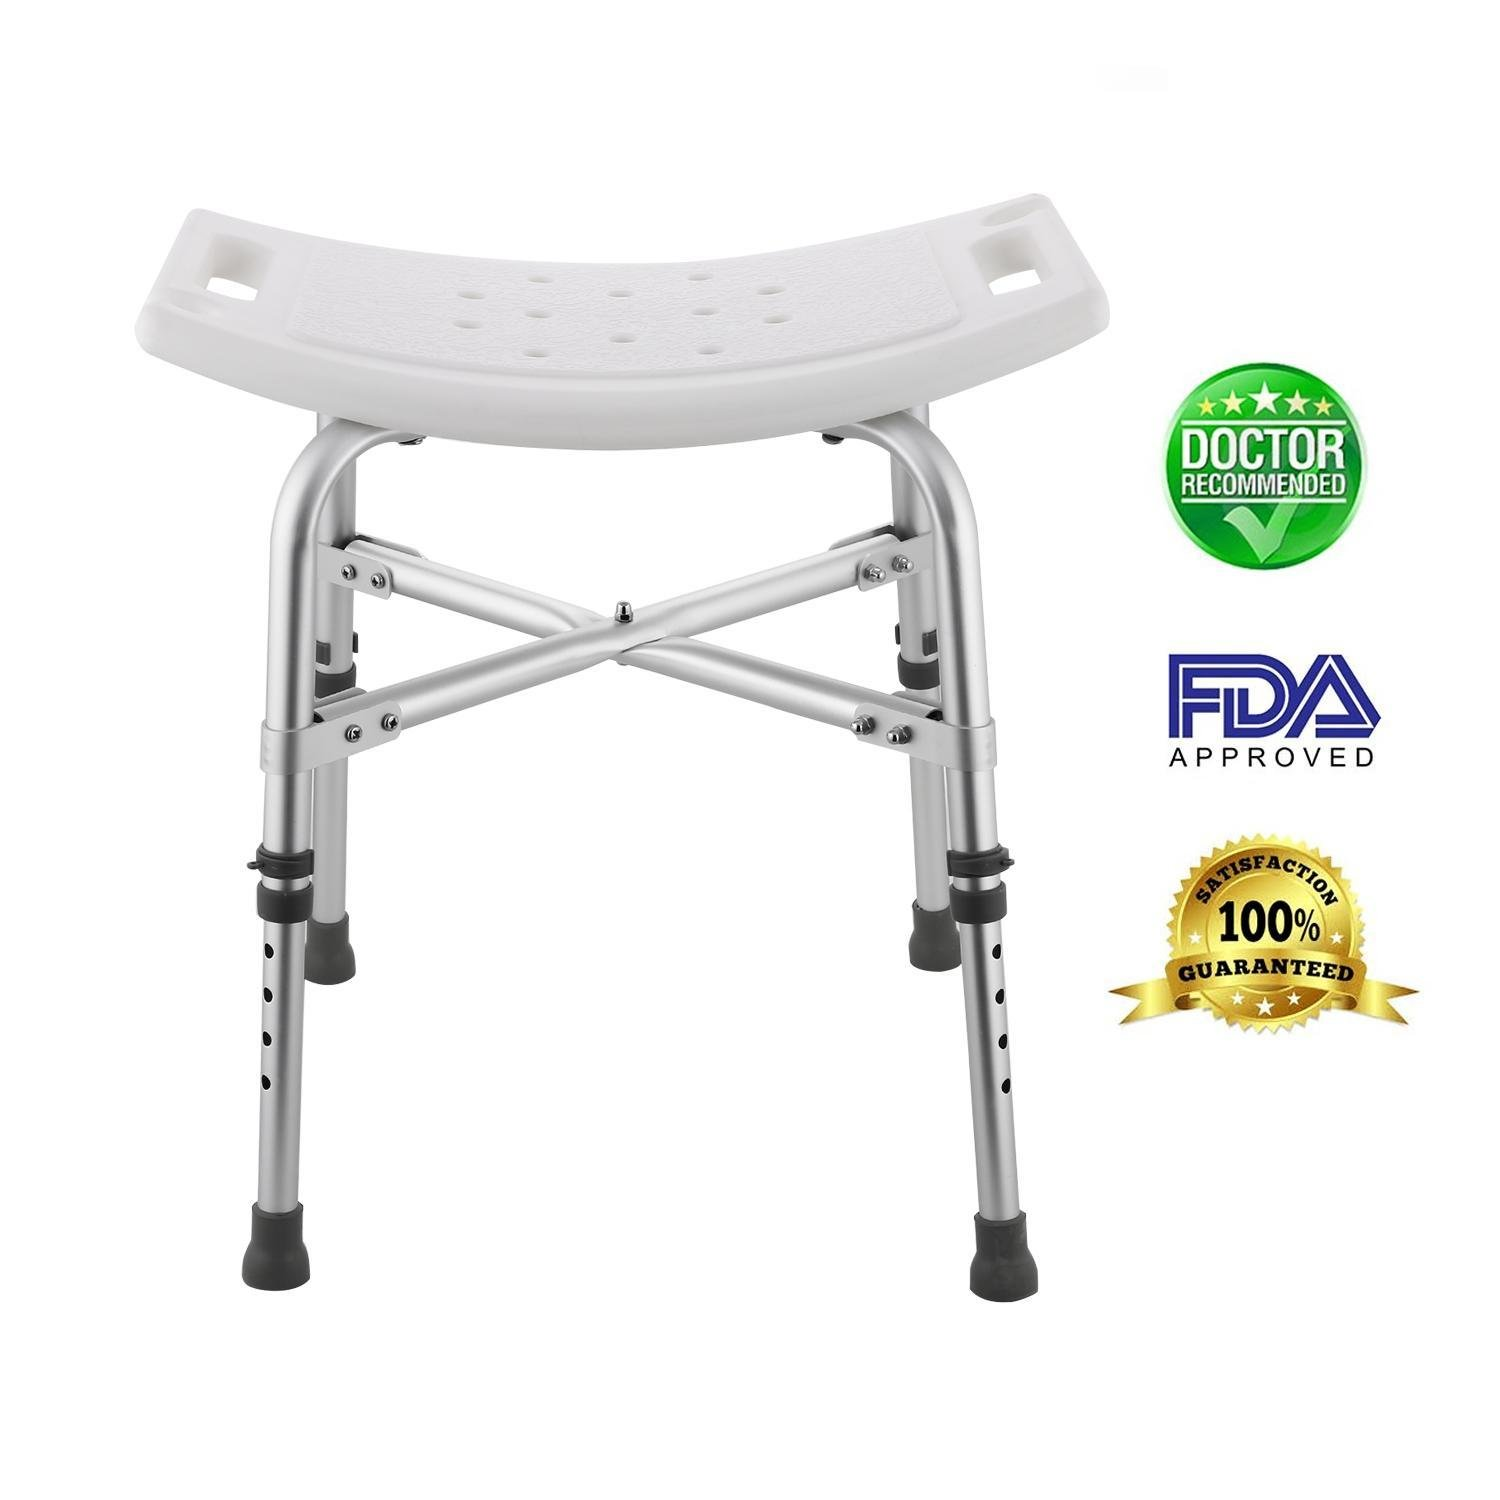 Vividy Height Adjustable Sturdy Aluminium Shower Stool Seat Bathroom Aid, Shower Bench Bath Chair for Elderly, 330 pounds Weigh Capacity (US Stock) (16.4-21.1inch)